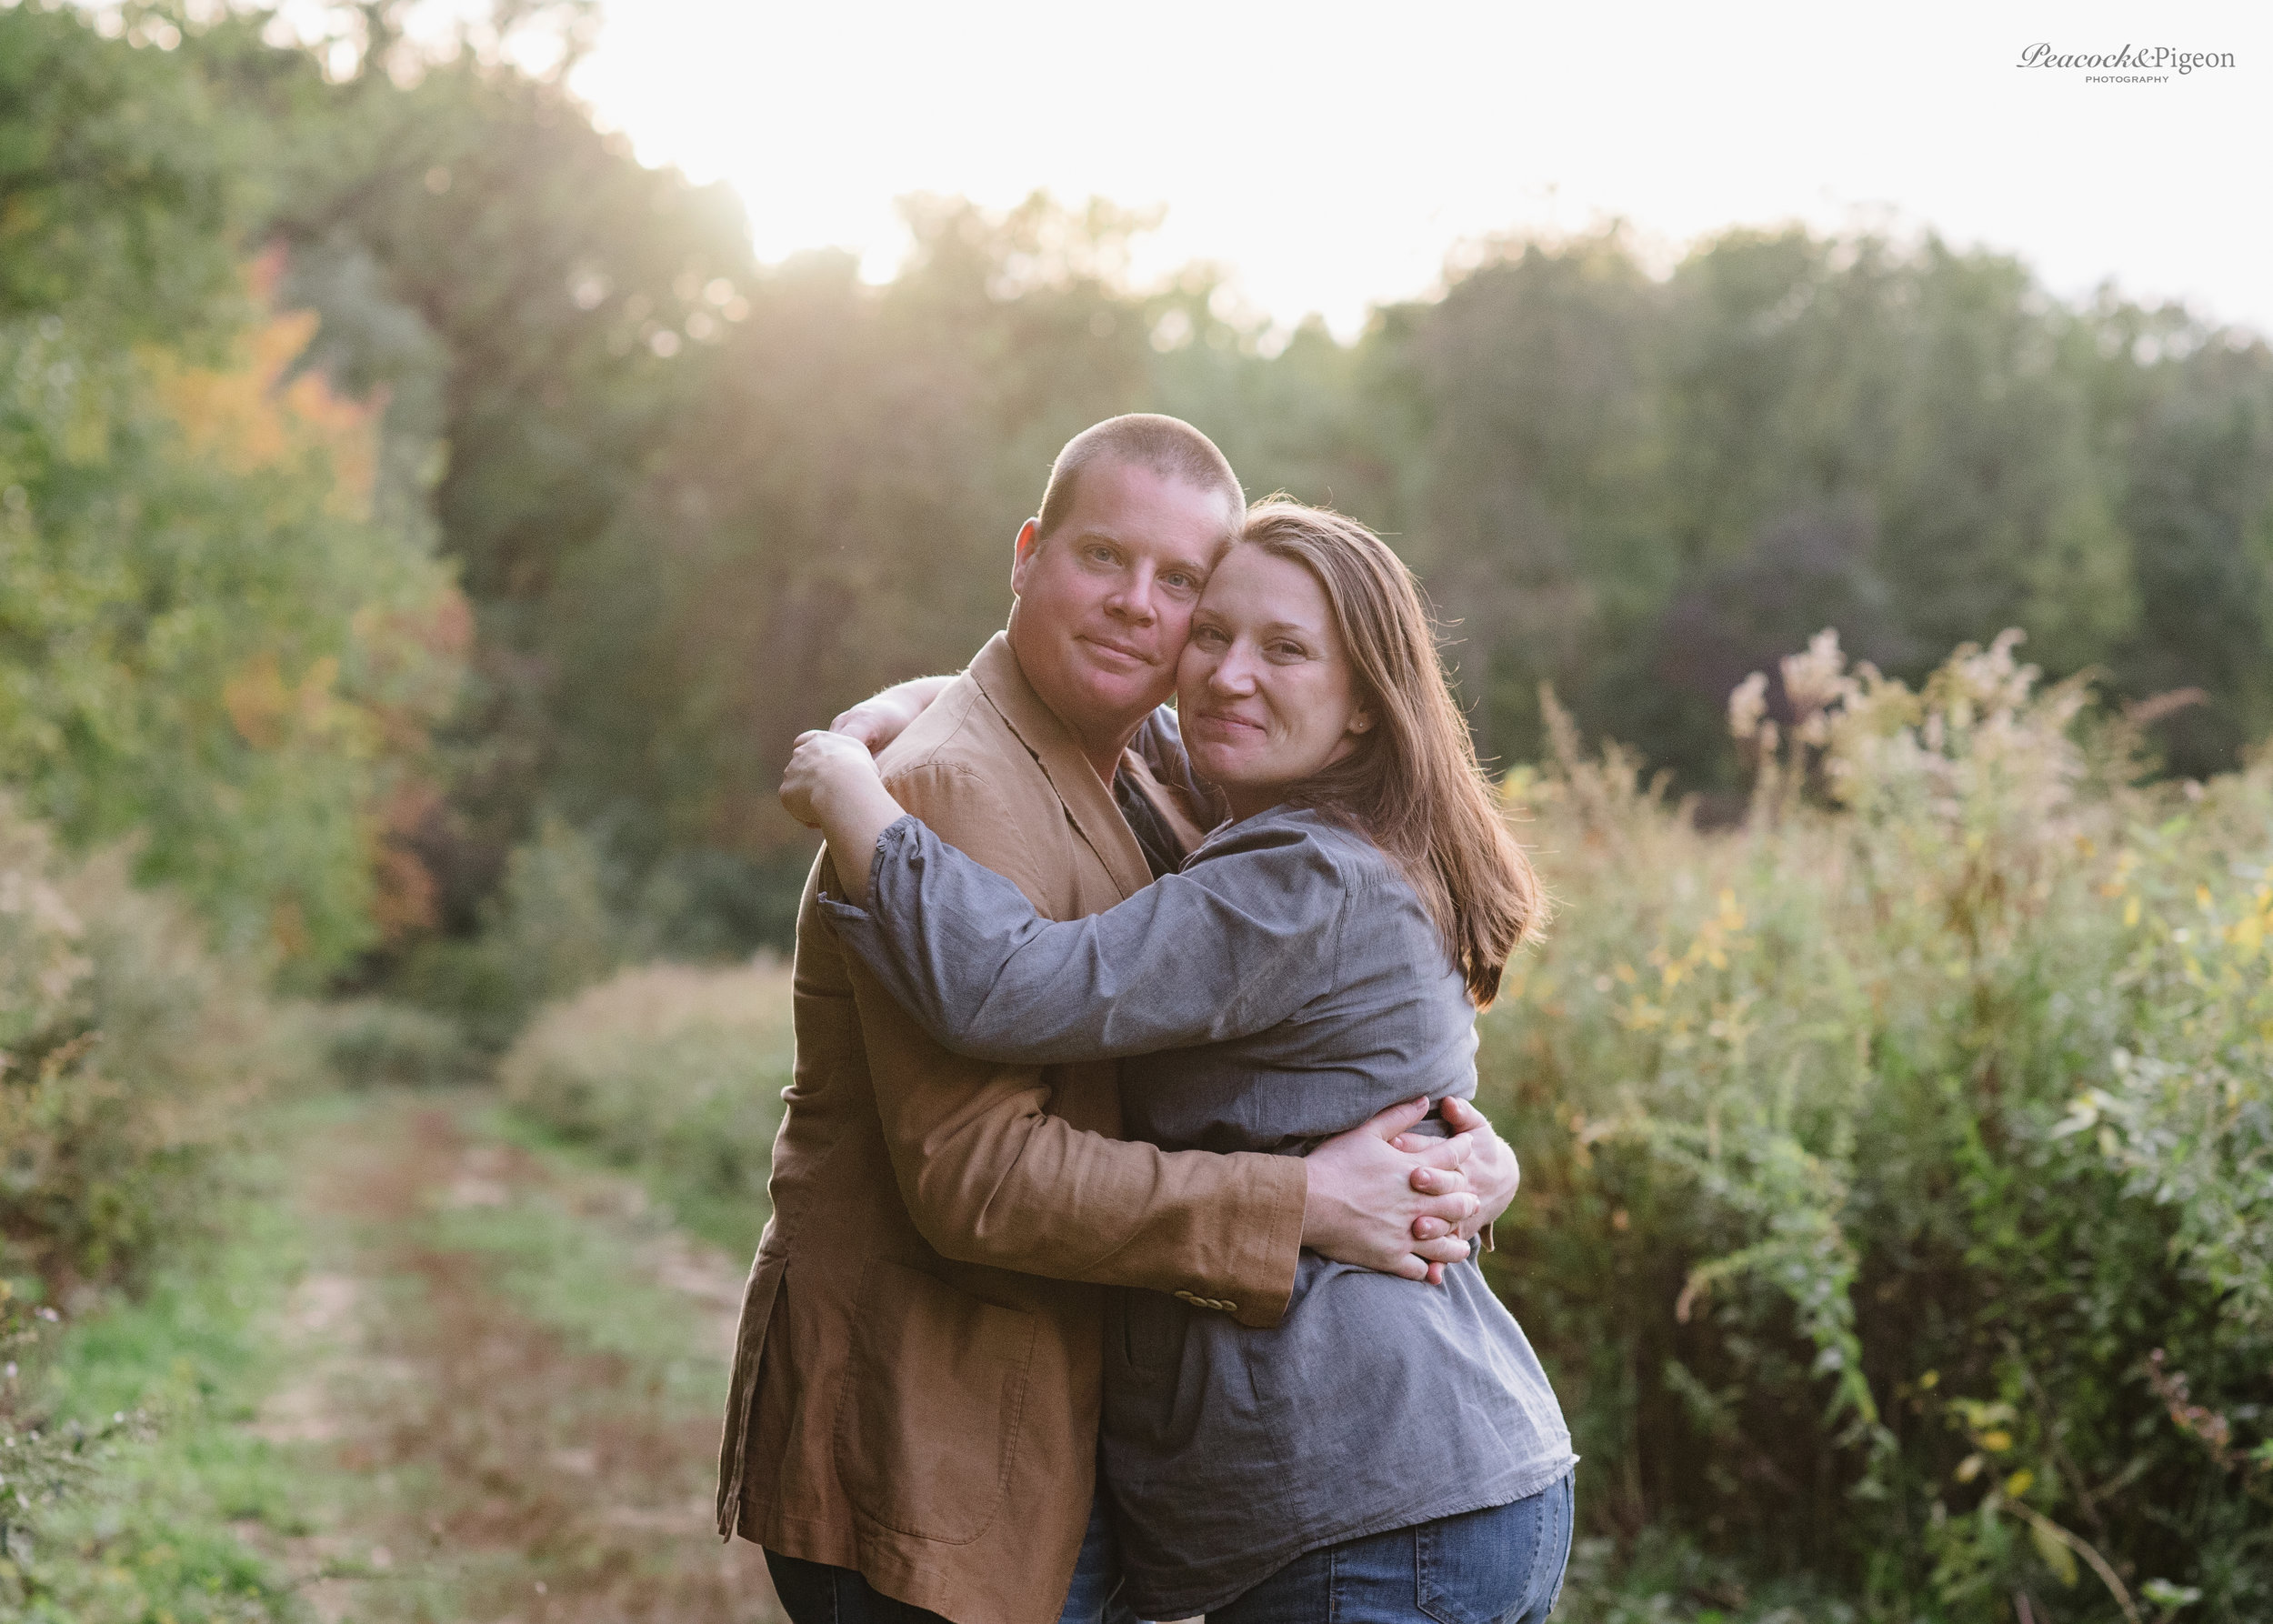 Jeff_and_Christina_Fall_Family_Photos_Peacock_and_Pigeon_Photography-W-53.jpg